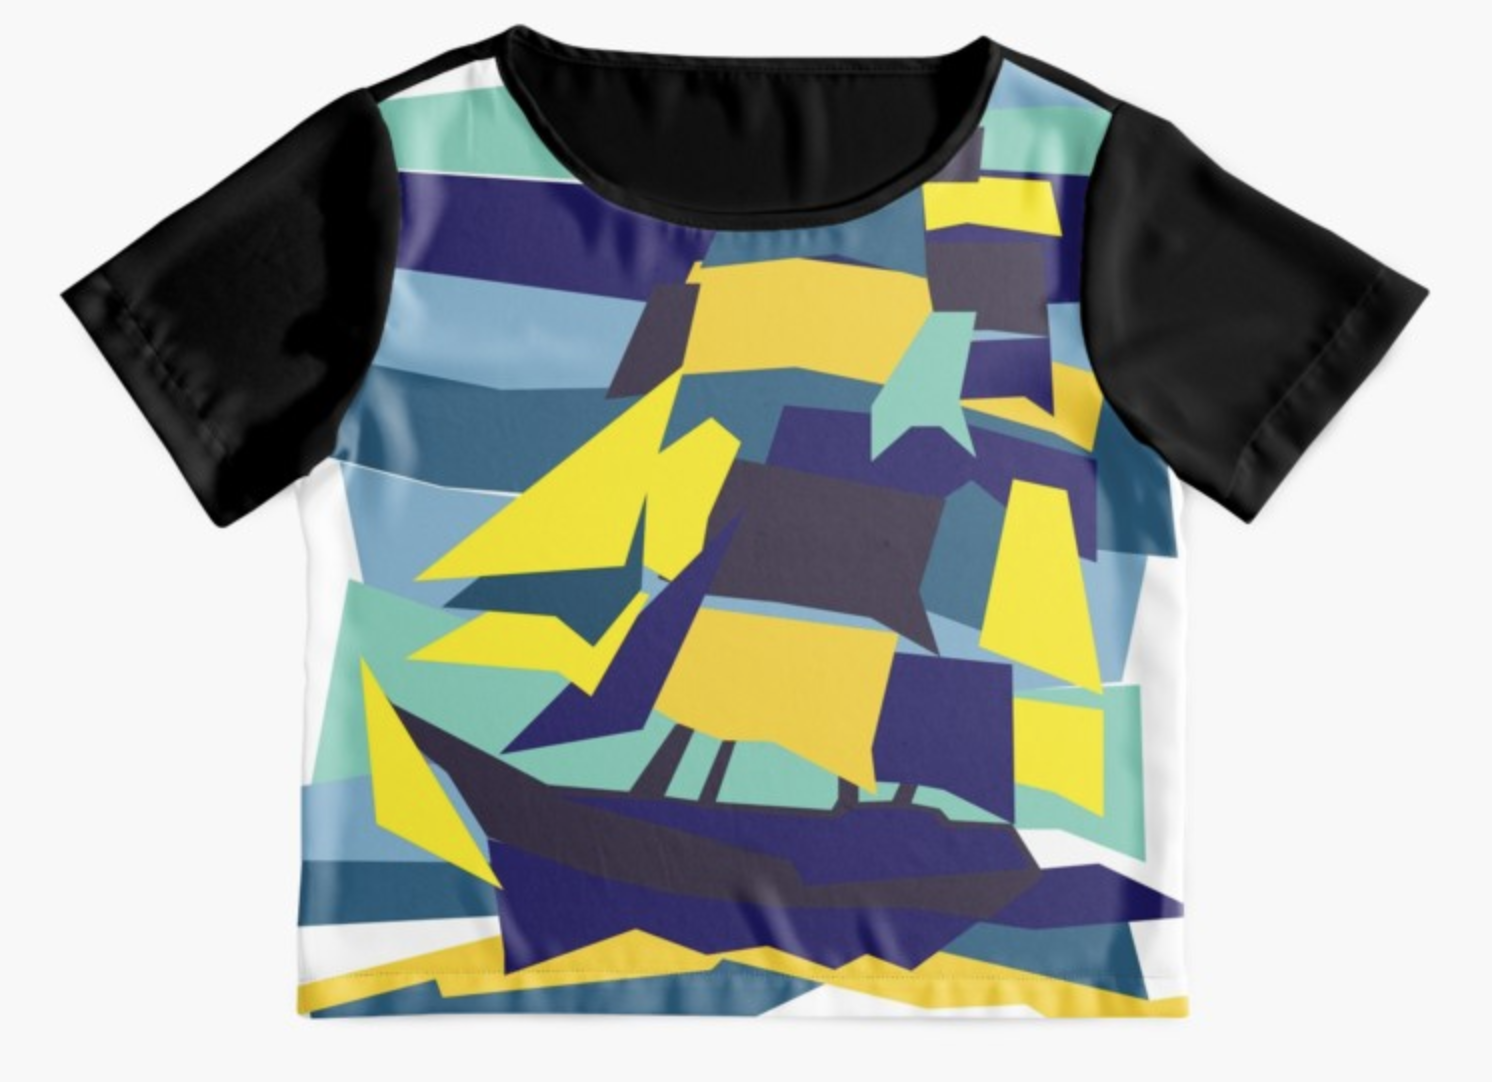 Tshirt design on redbubble - sail boat on the see geometric design